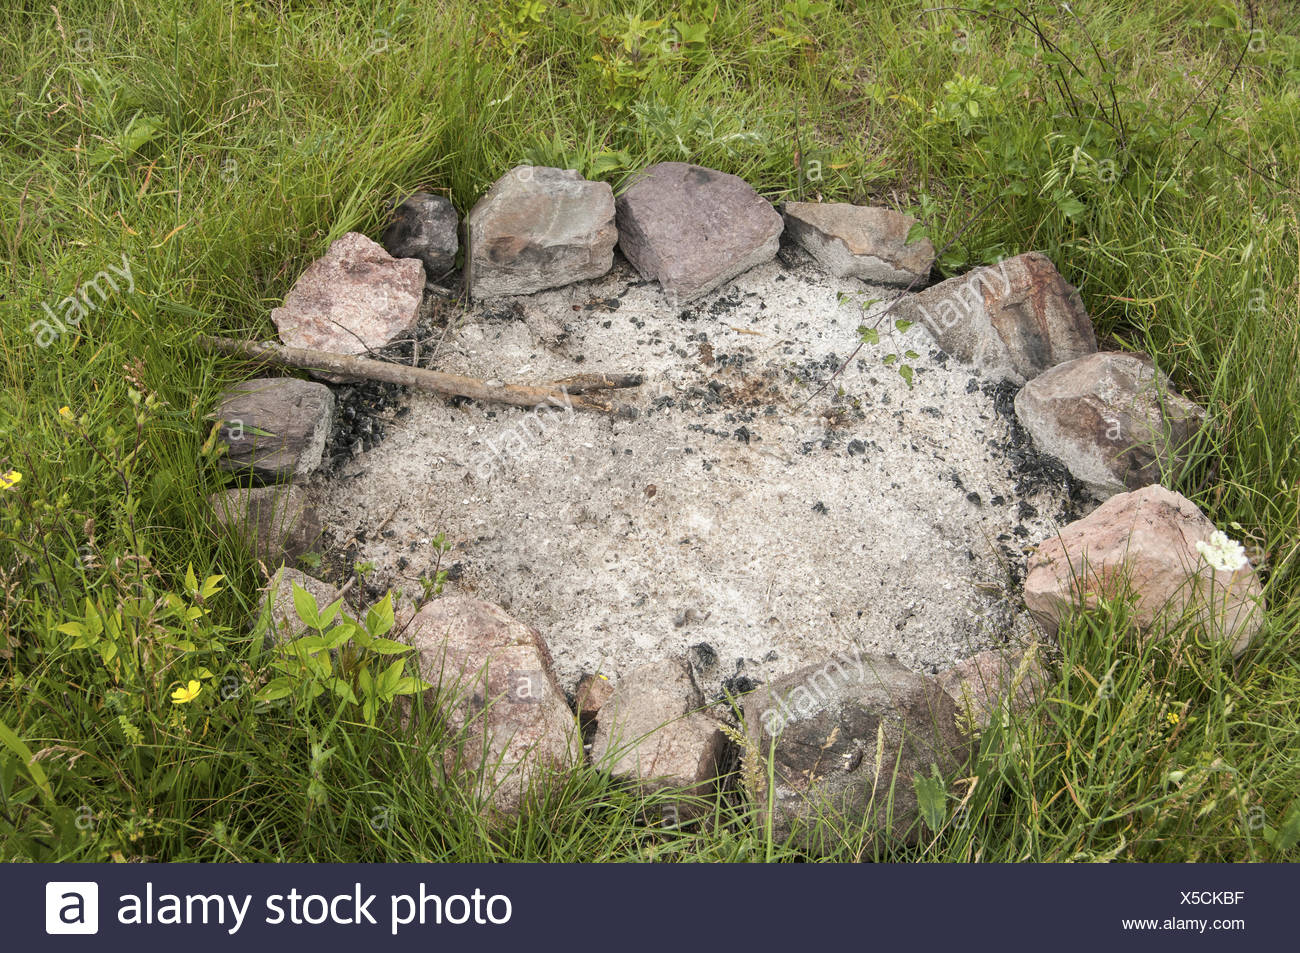 Unlit camp fireplace - Stock Image